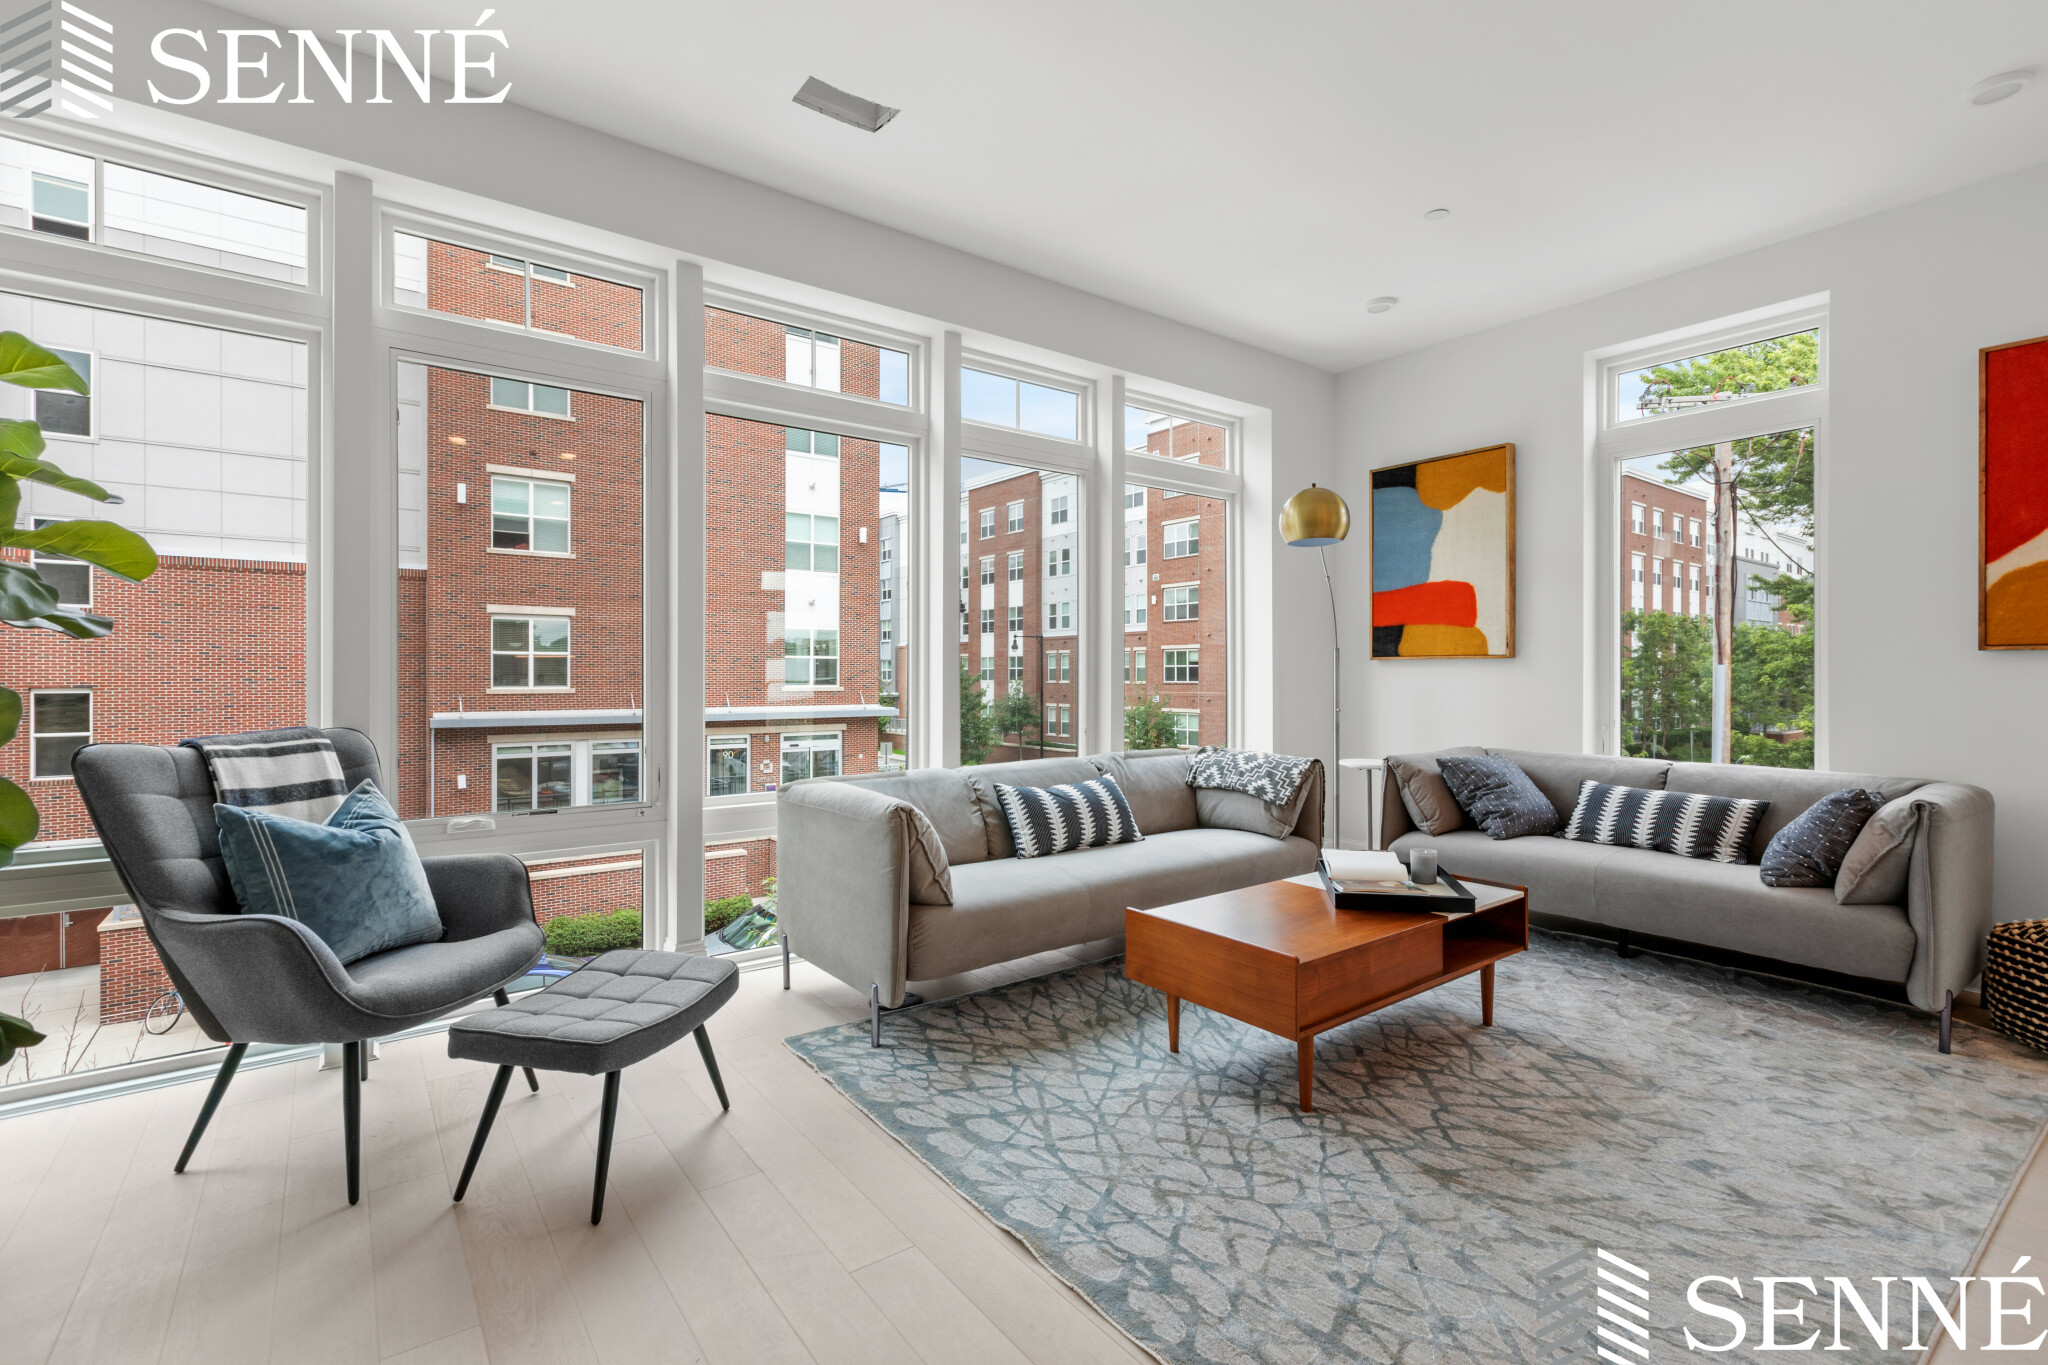 1 Bed, 1 Bath apartment in Cambridge for $2,600